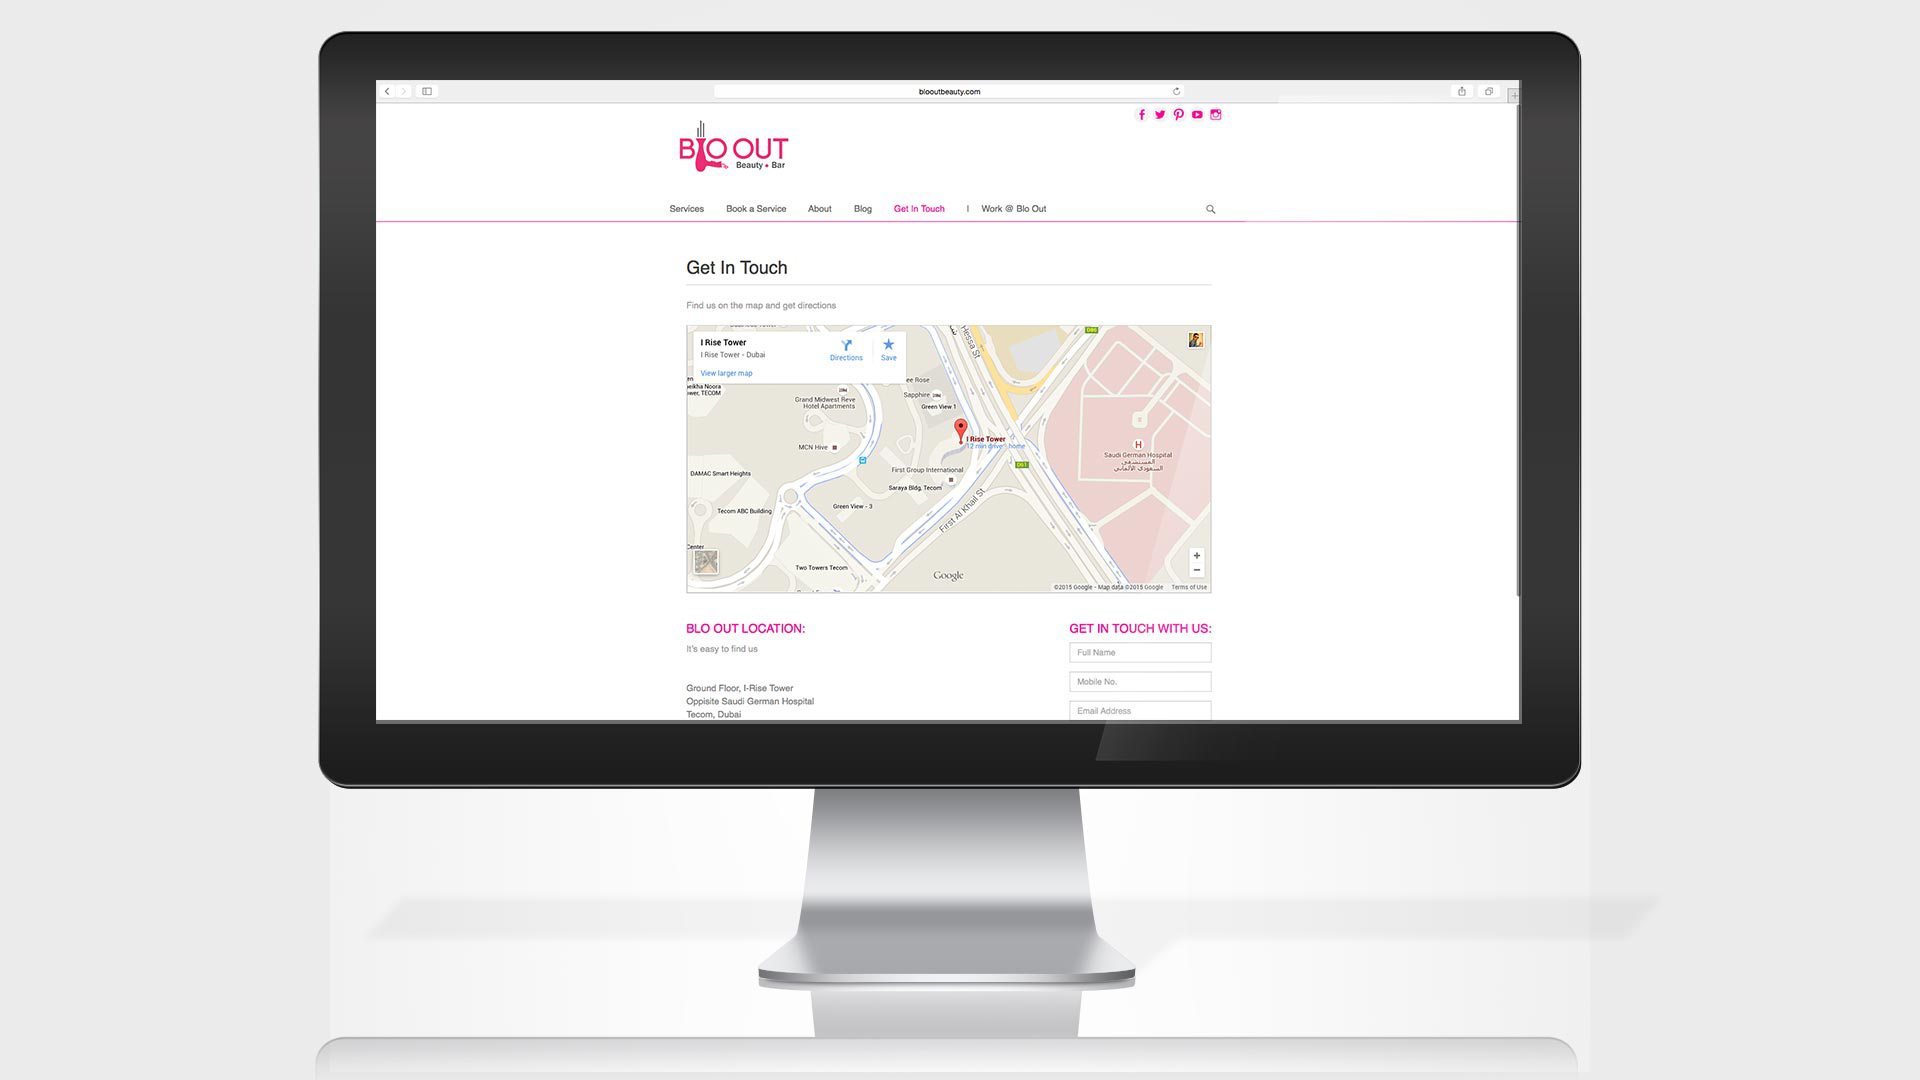 blo-out-beauty-bar-website-get-in-touch-page